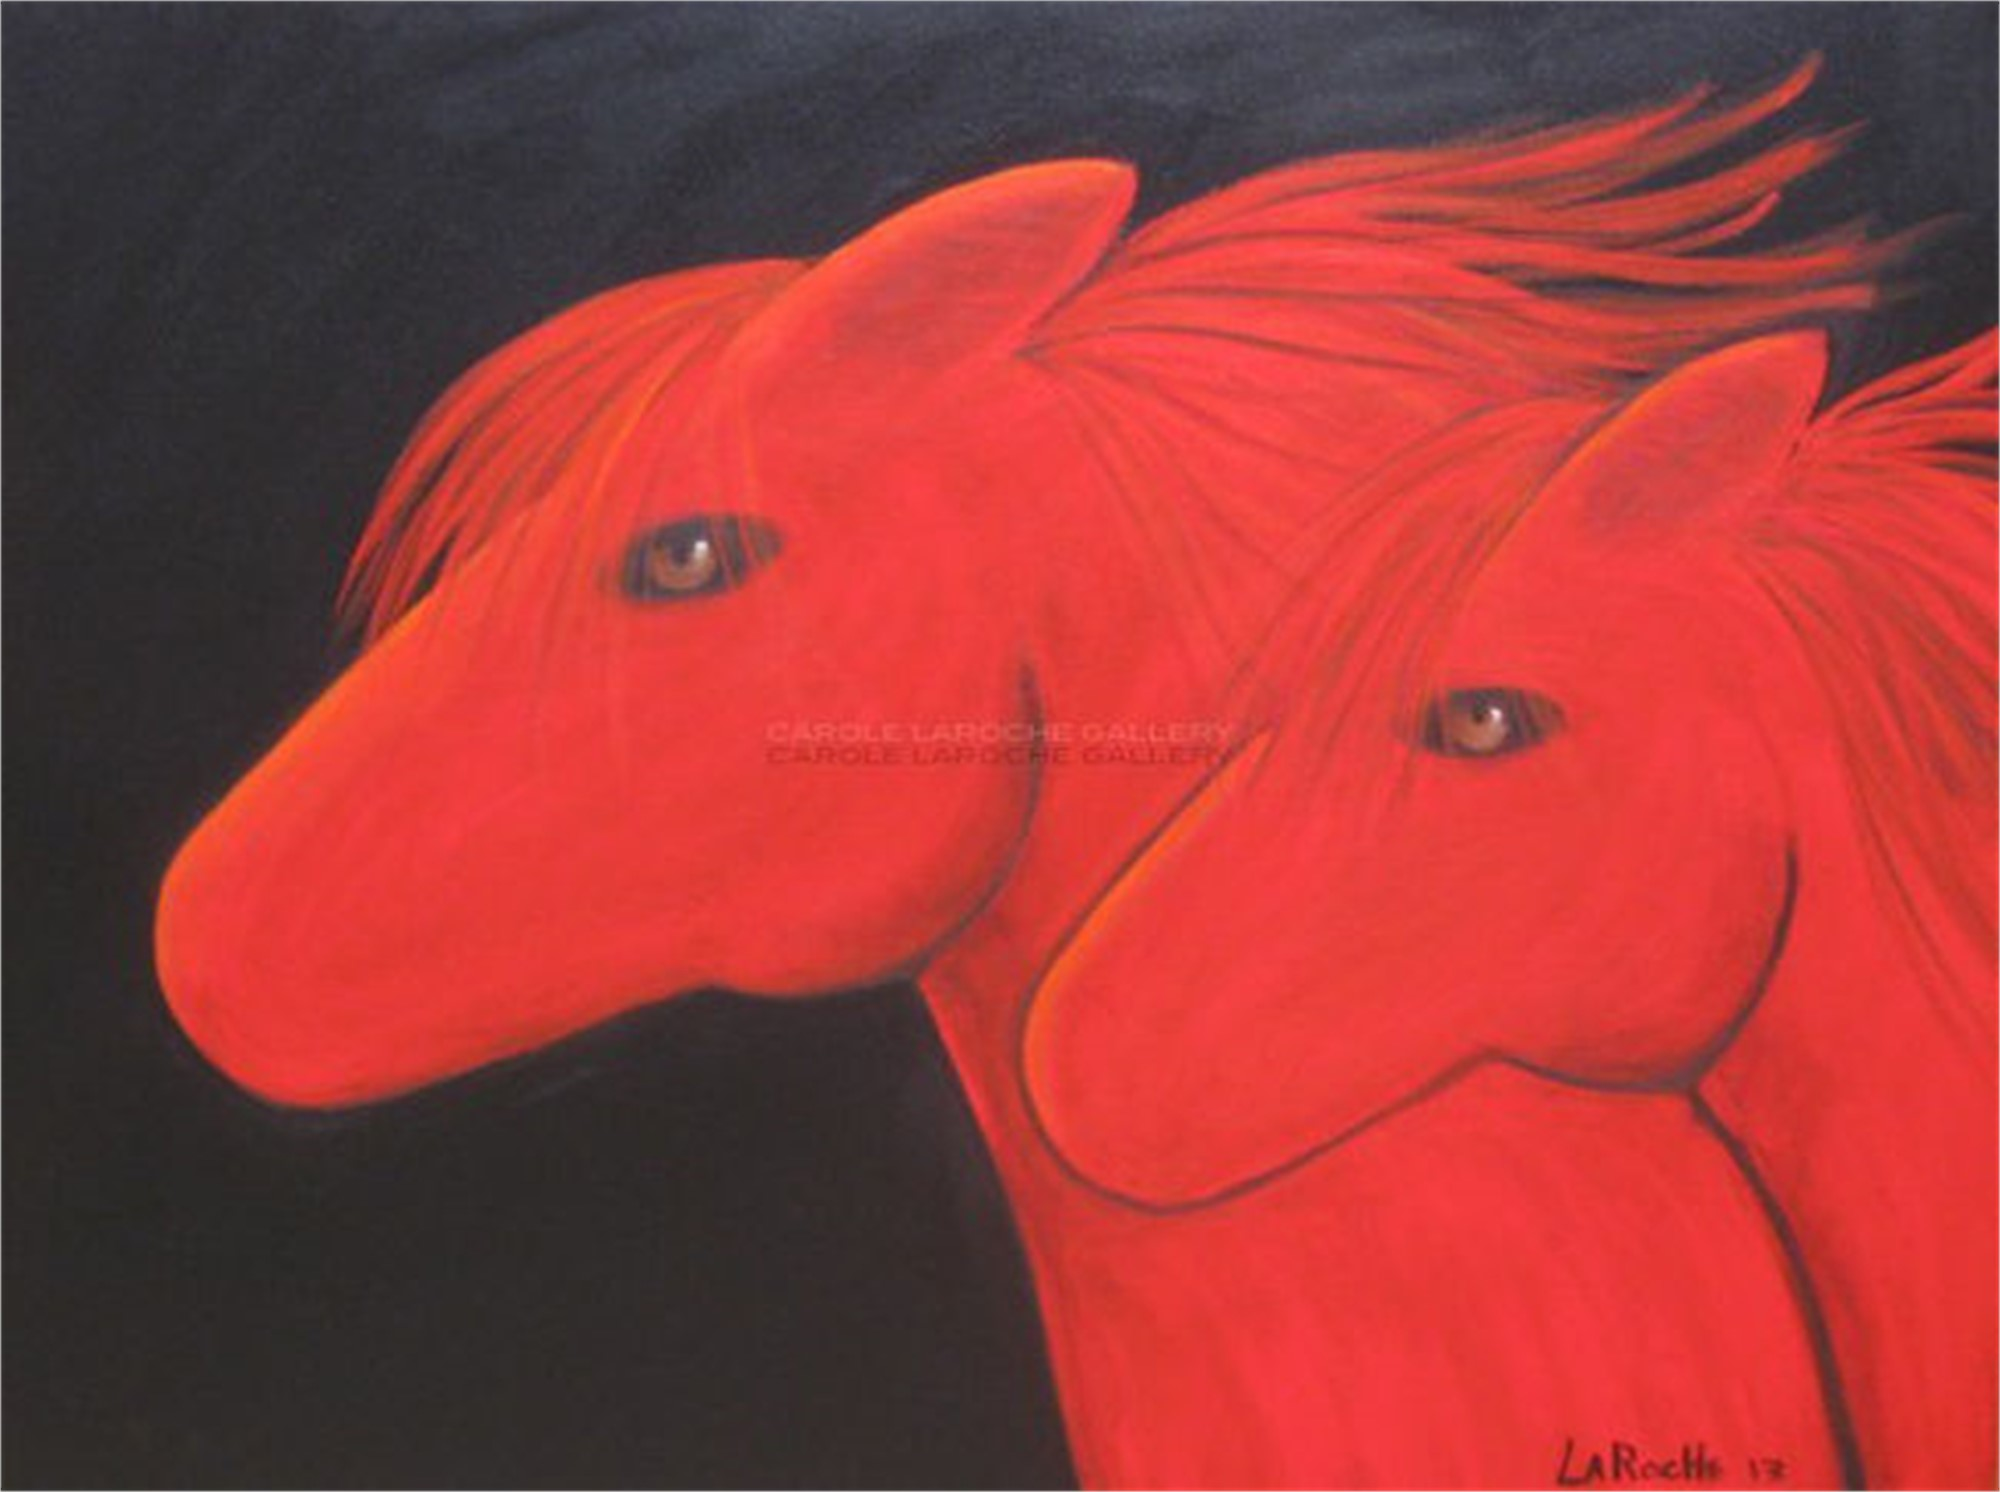 TWO RED HORSES by Carole LaRoche